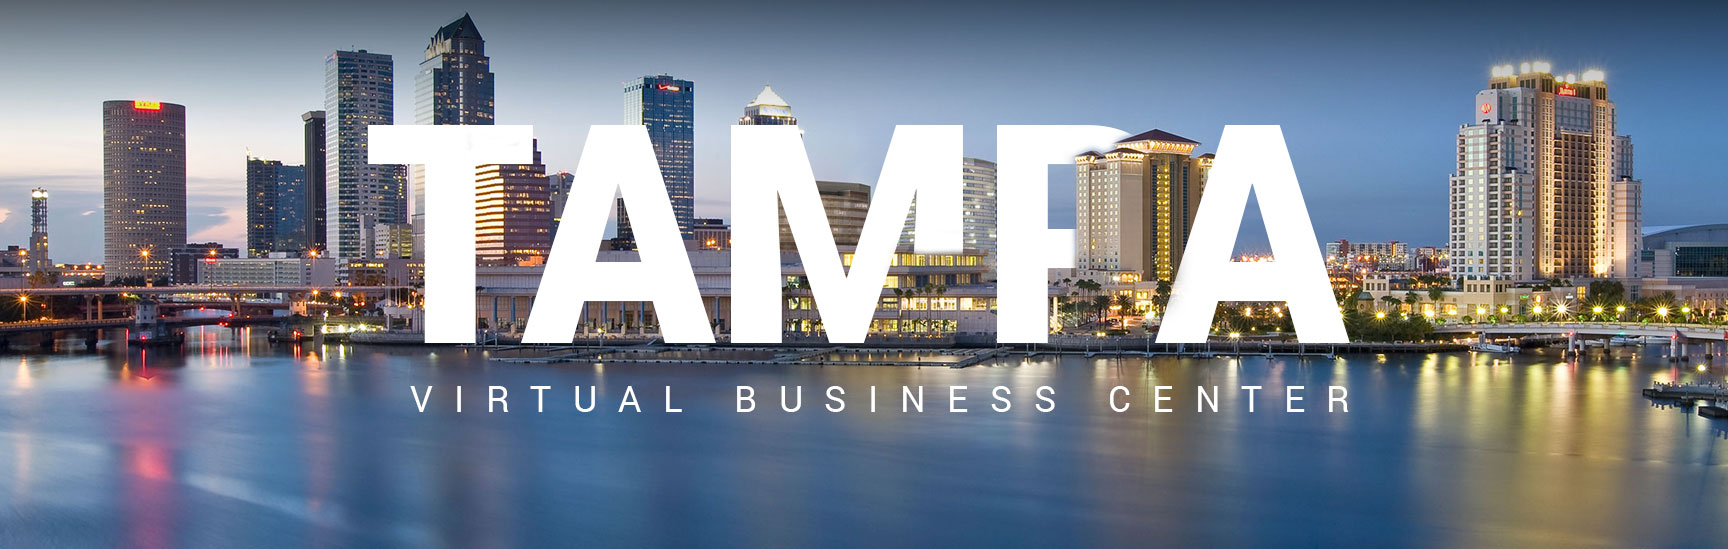 Tampa Business Center